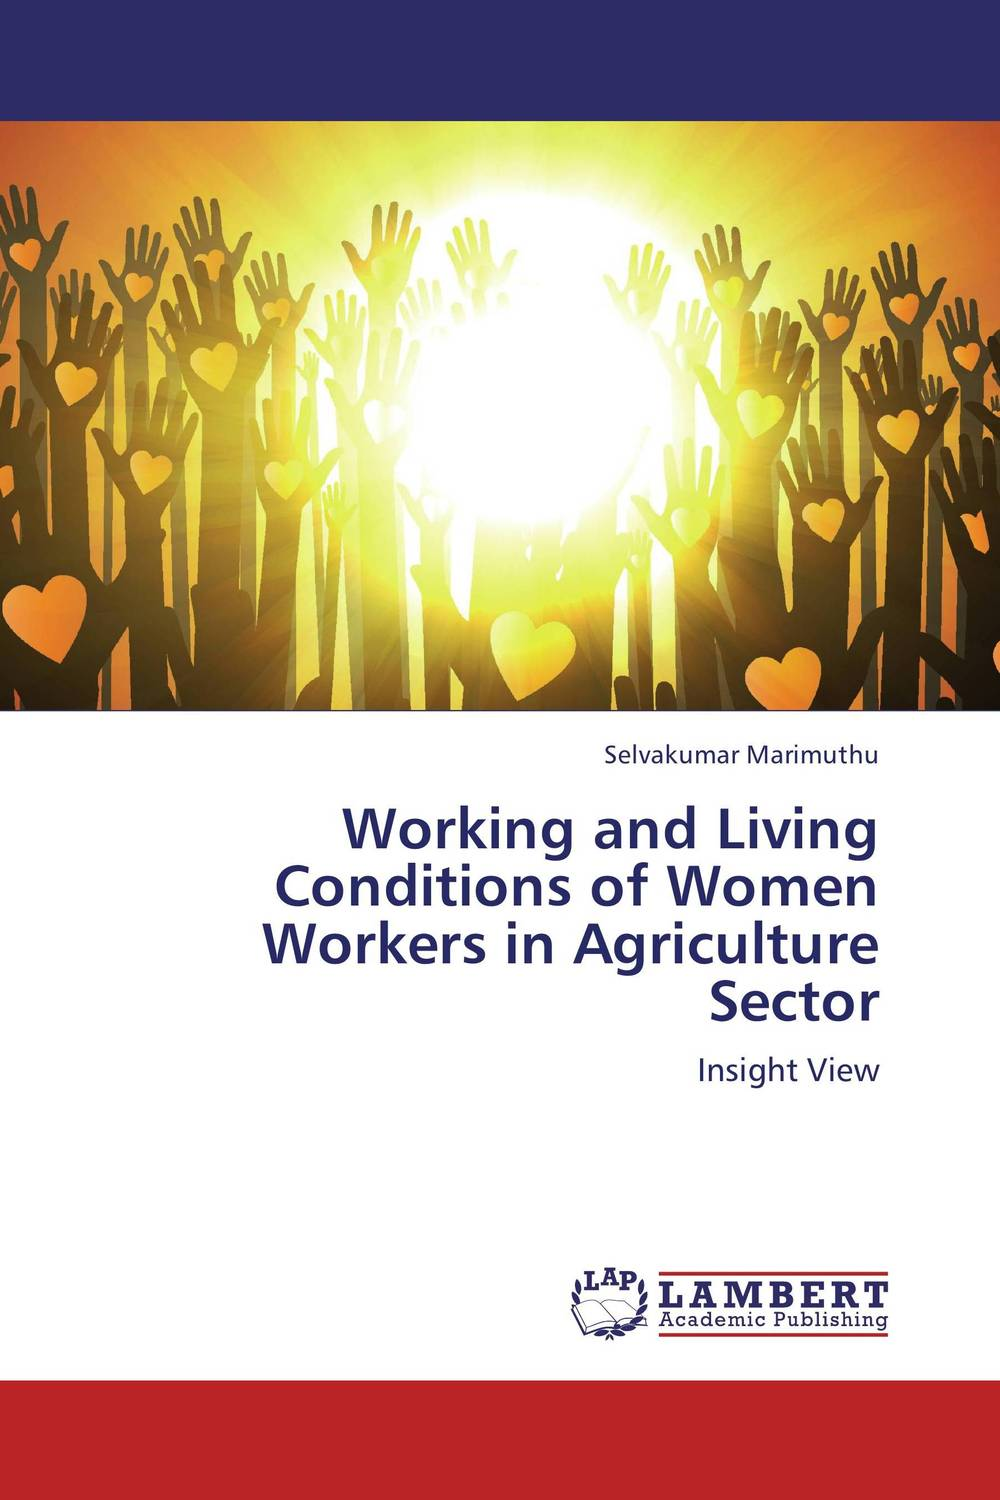 Working and Living Conditions of Women Workers in Agriculture Sector not working